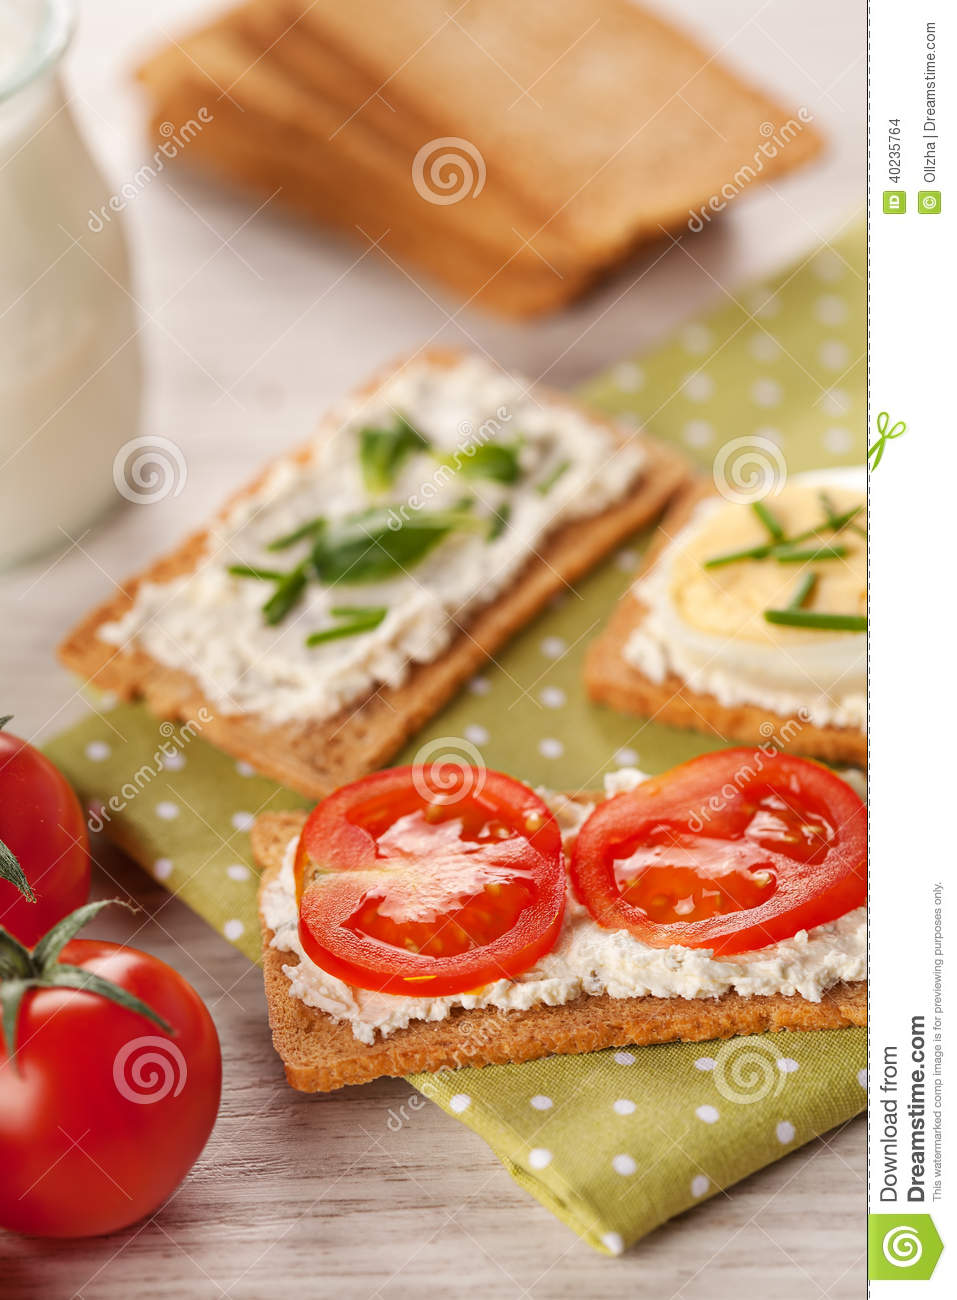 Tasty canapes breakfast snack meal stock photo image for Breakfast canape